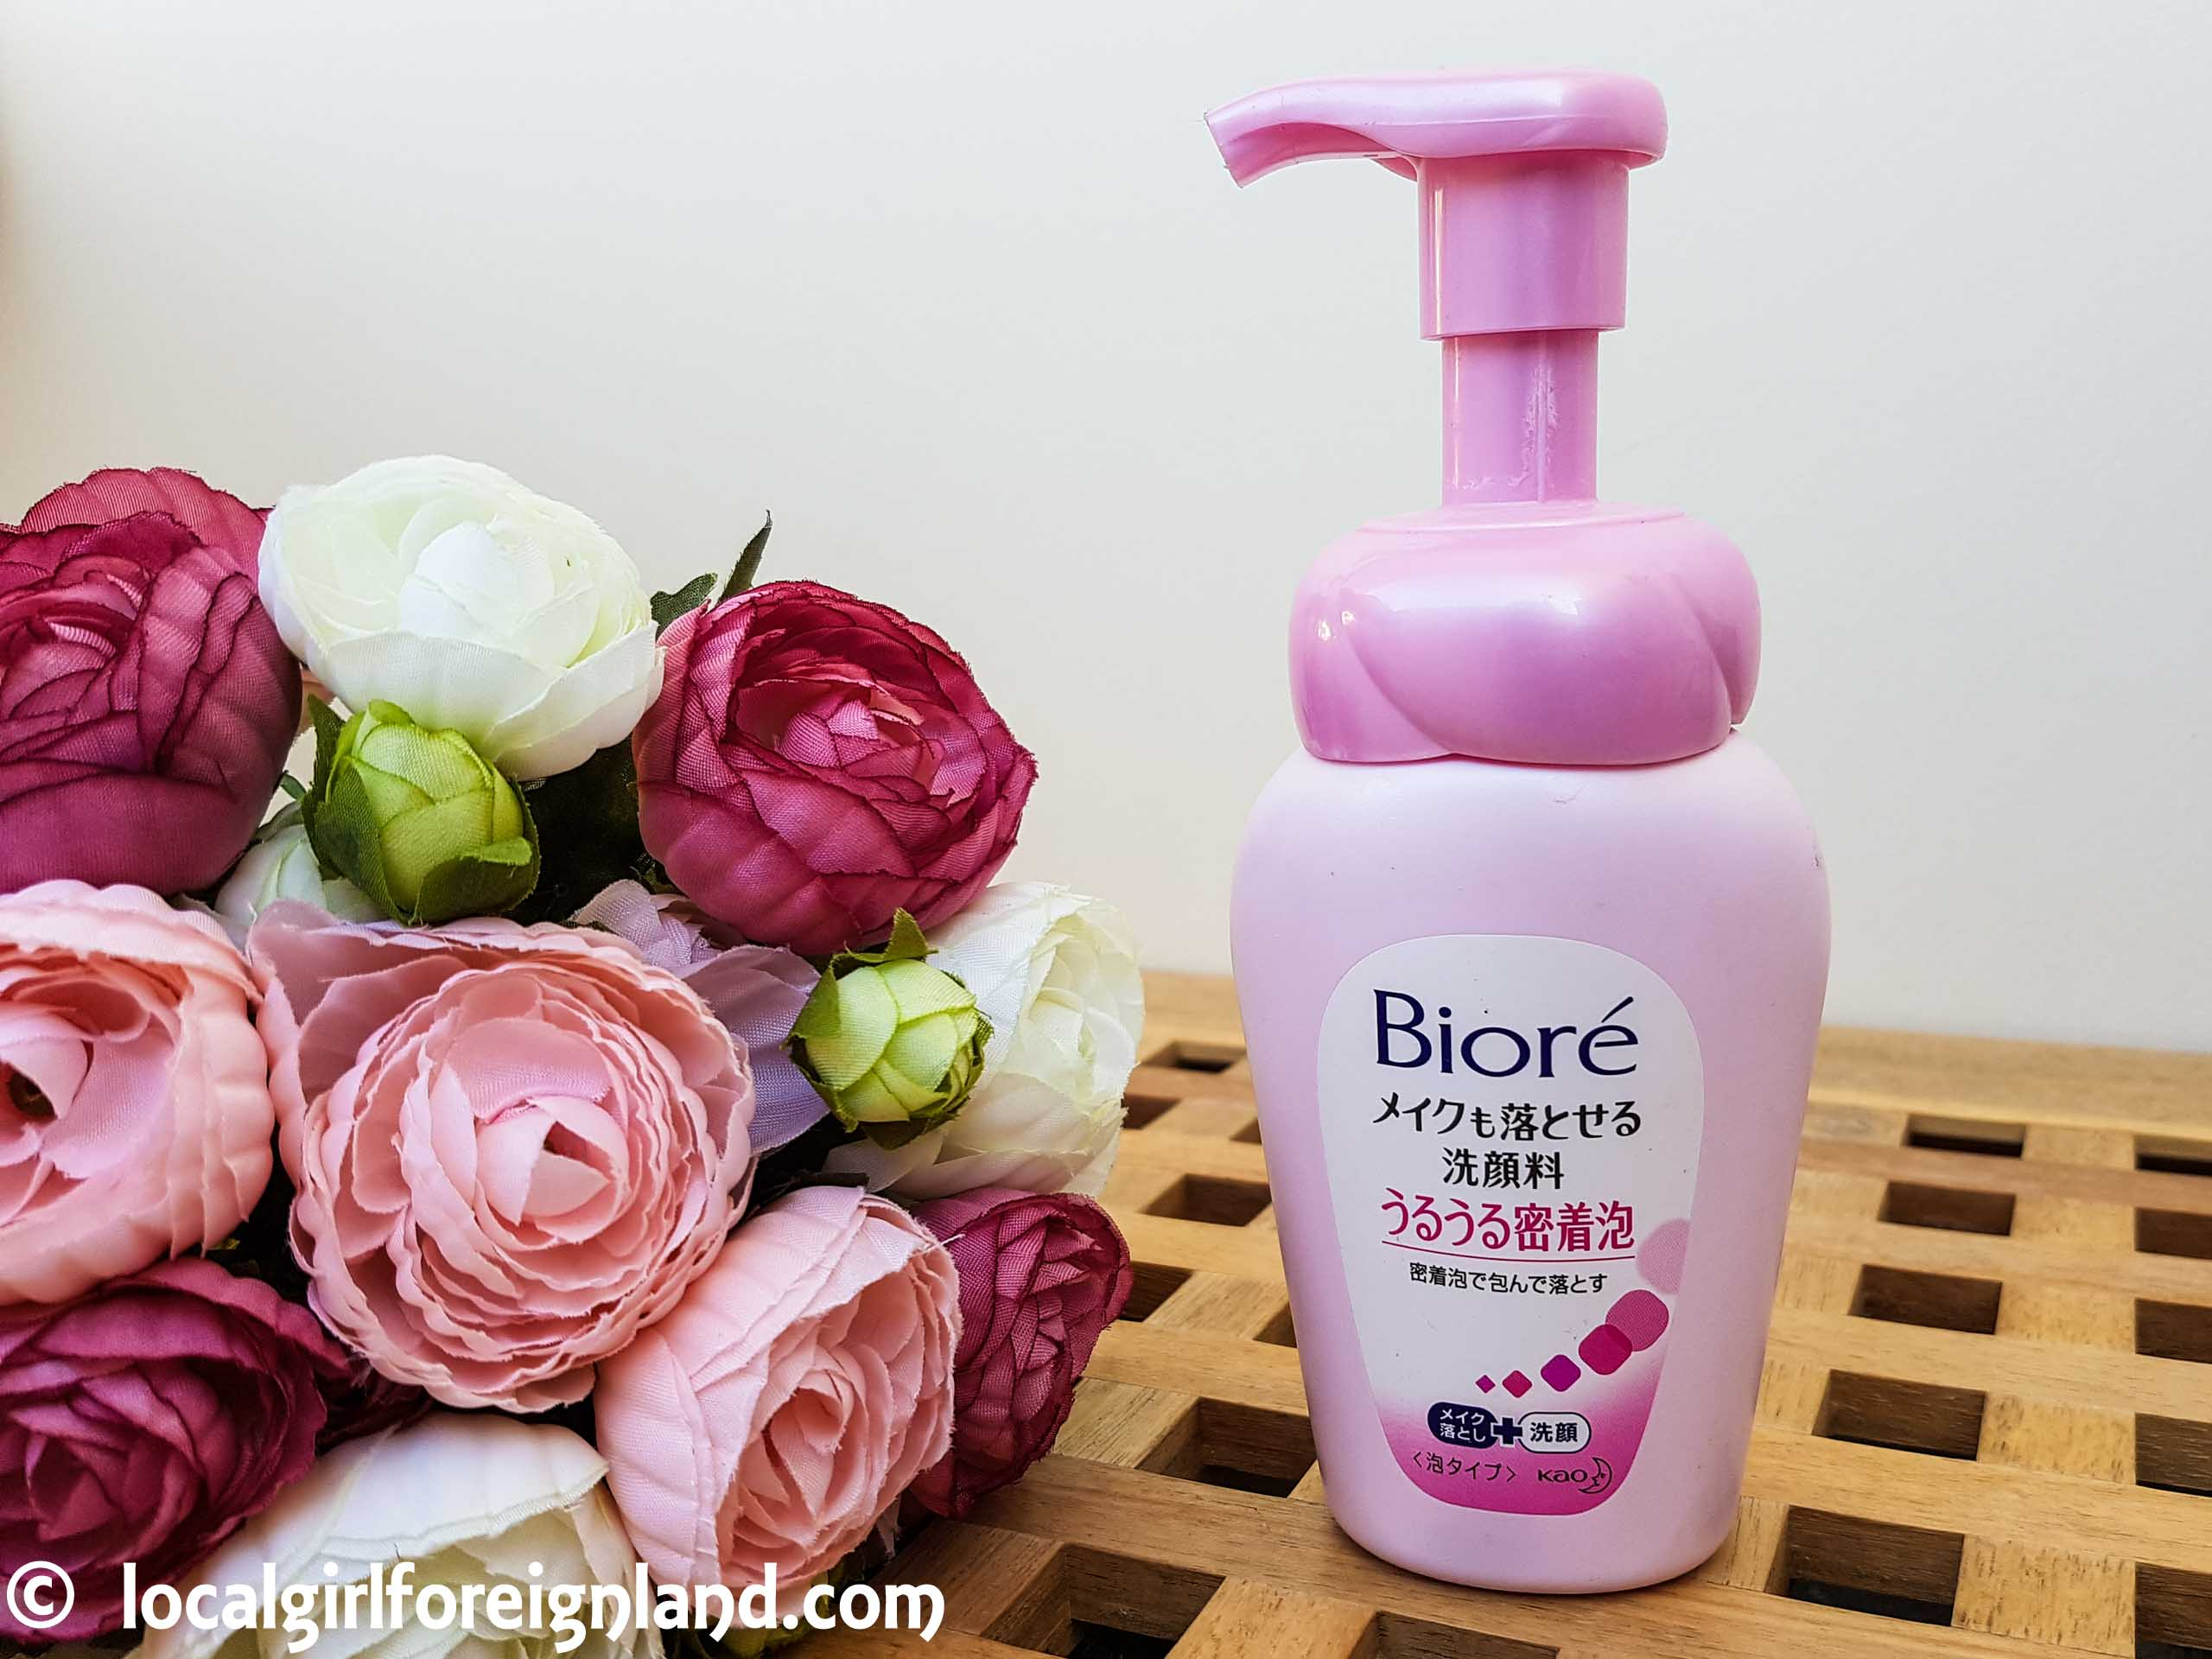 Bioré Makeup Removing Cleansing foam (ururu instant foaming wash), empties review